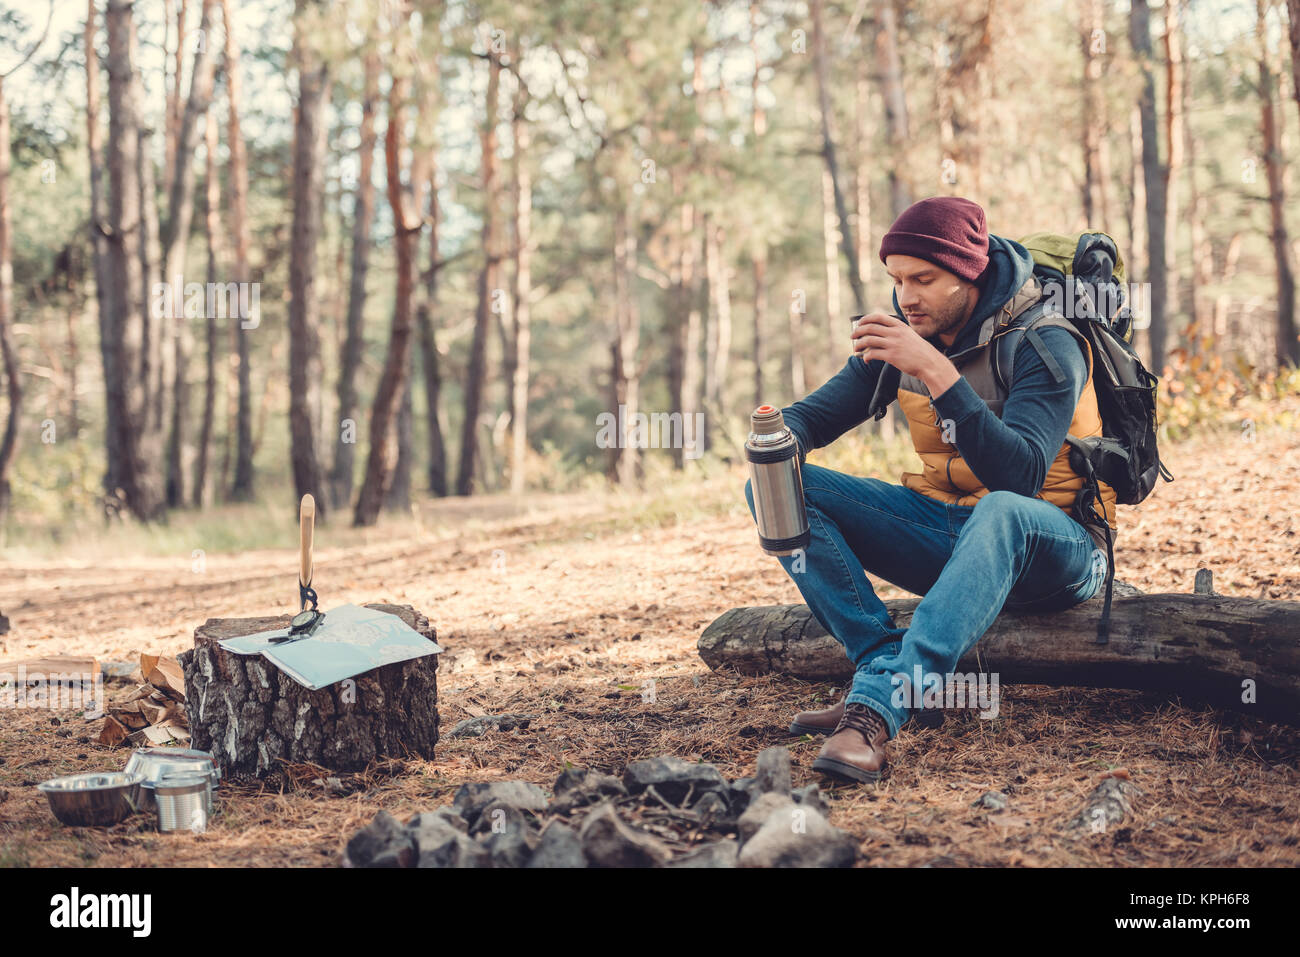 Man drinking tea in forest Photo Stock